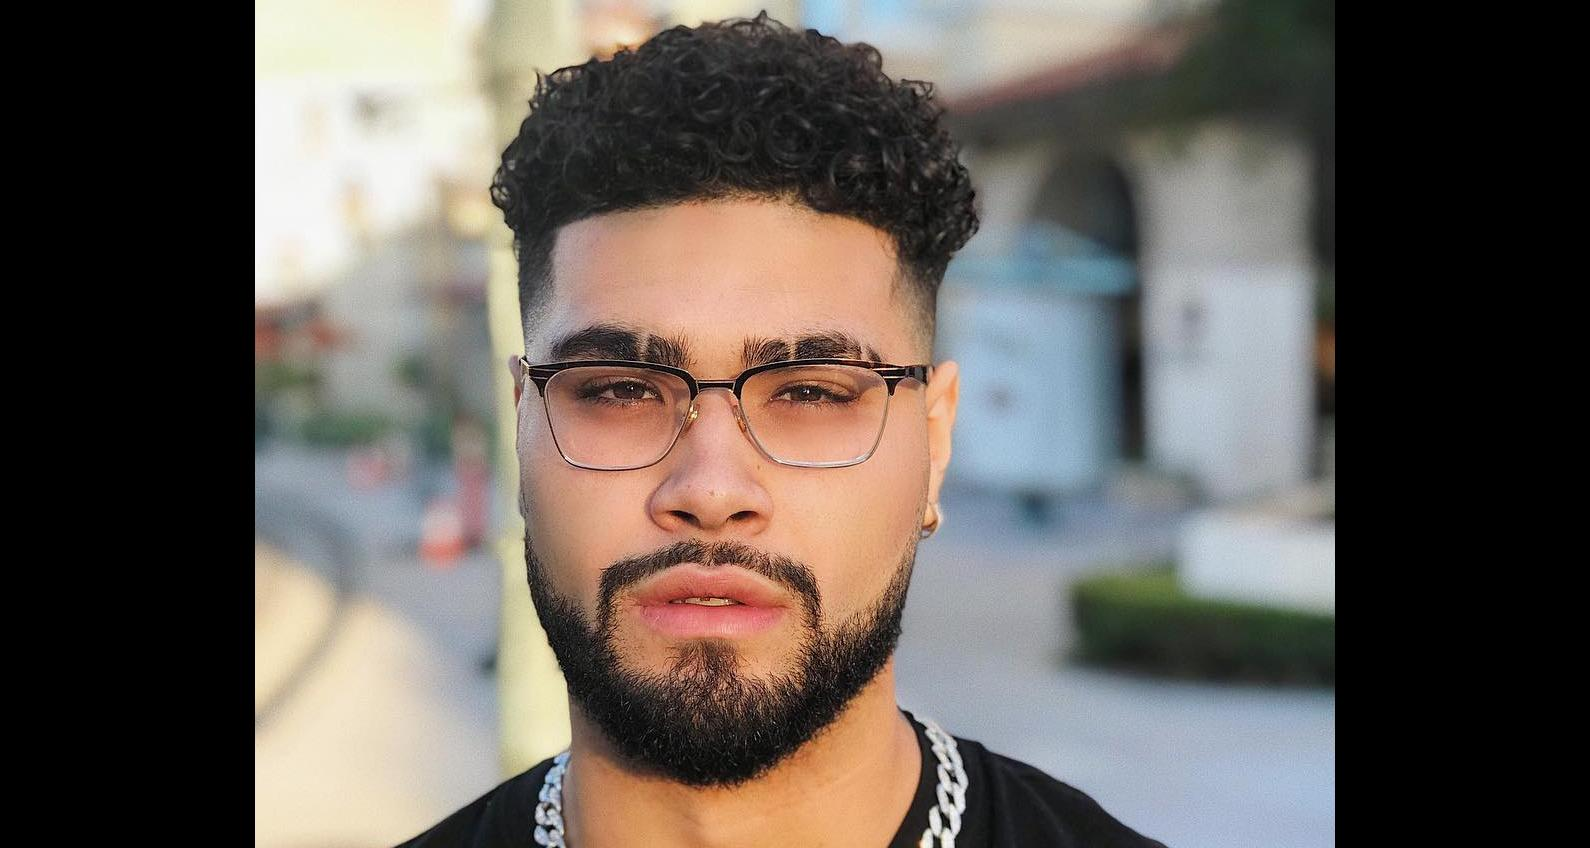 Ronnie Banks